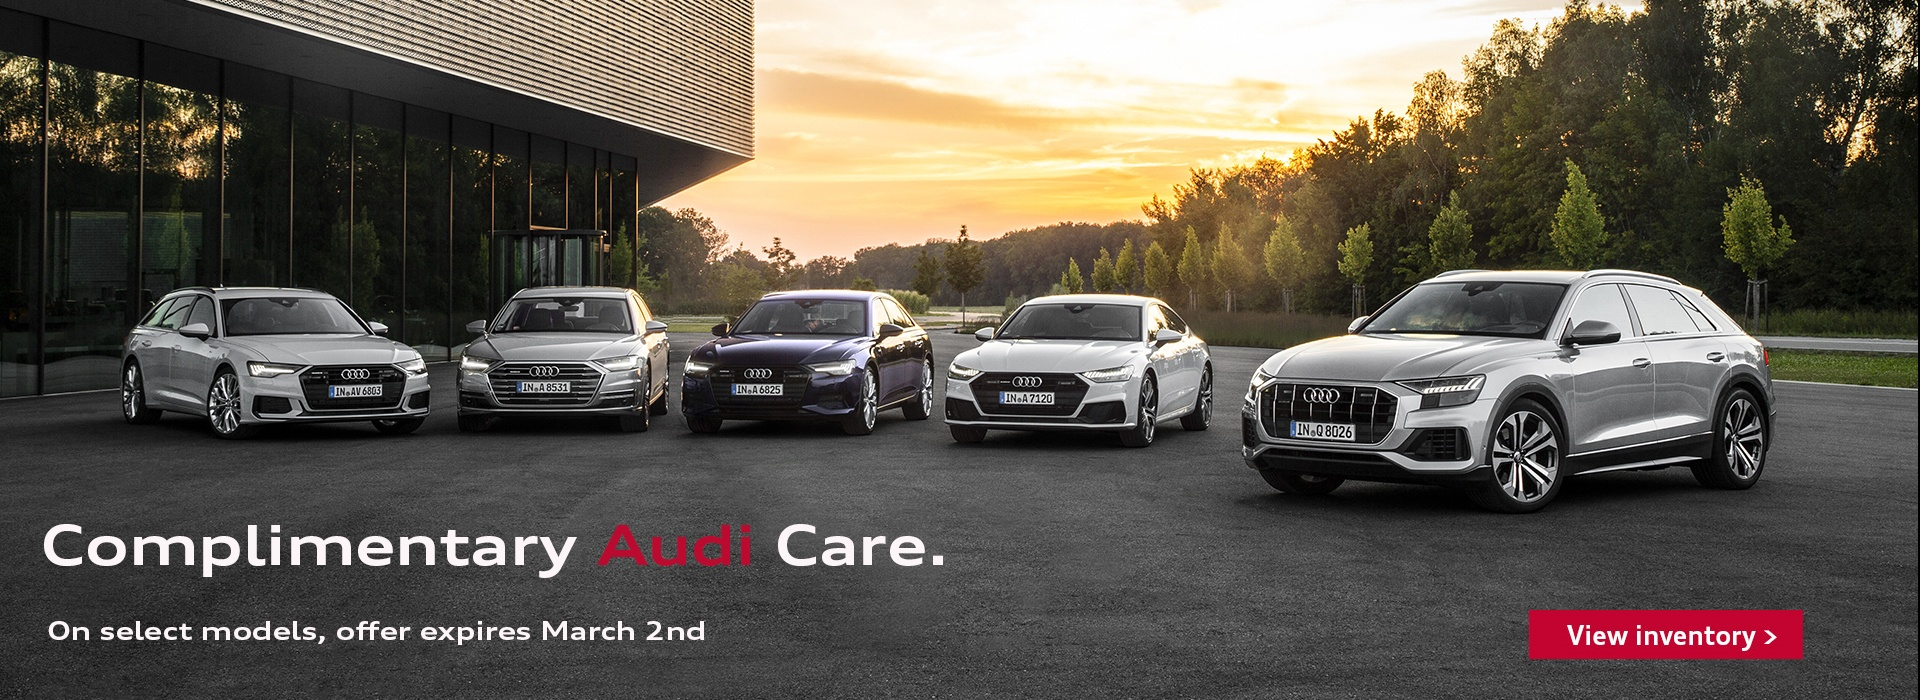 Complimentary Audi Care